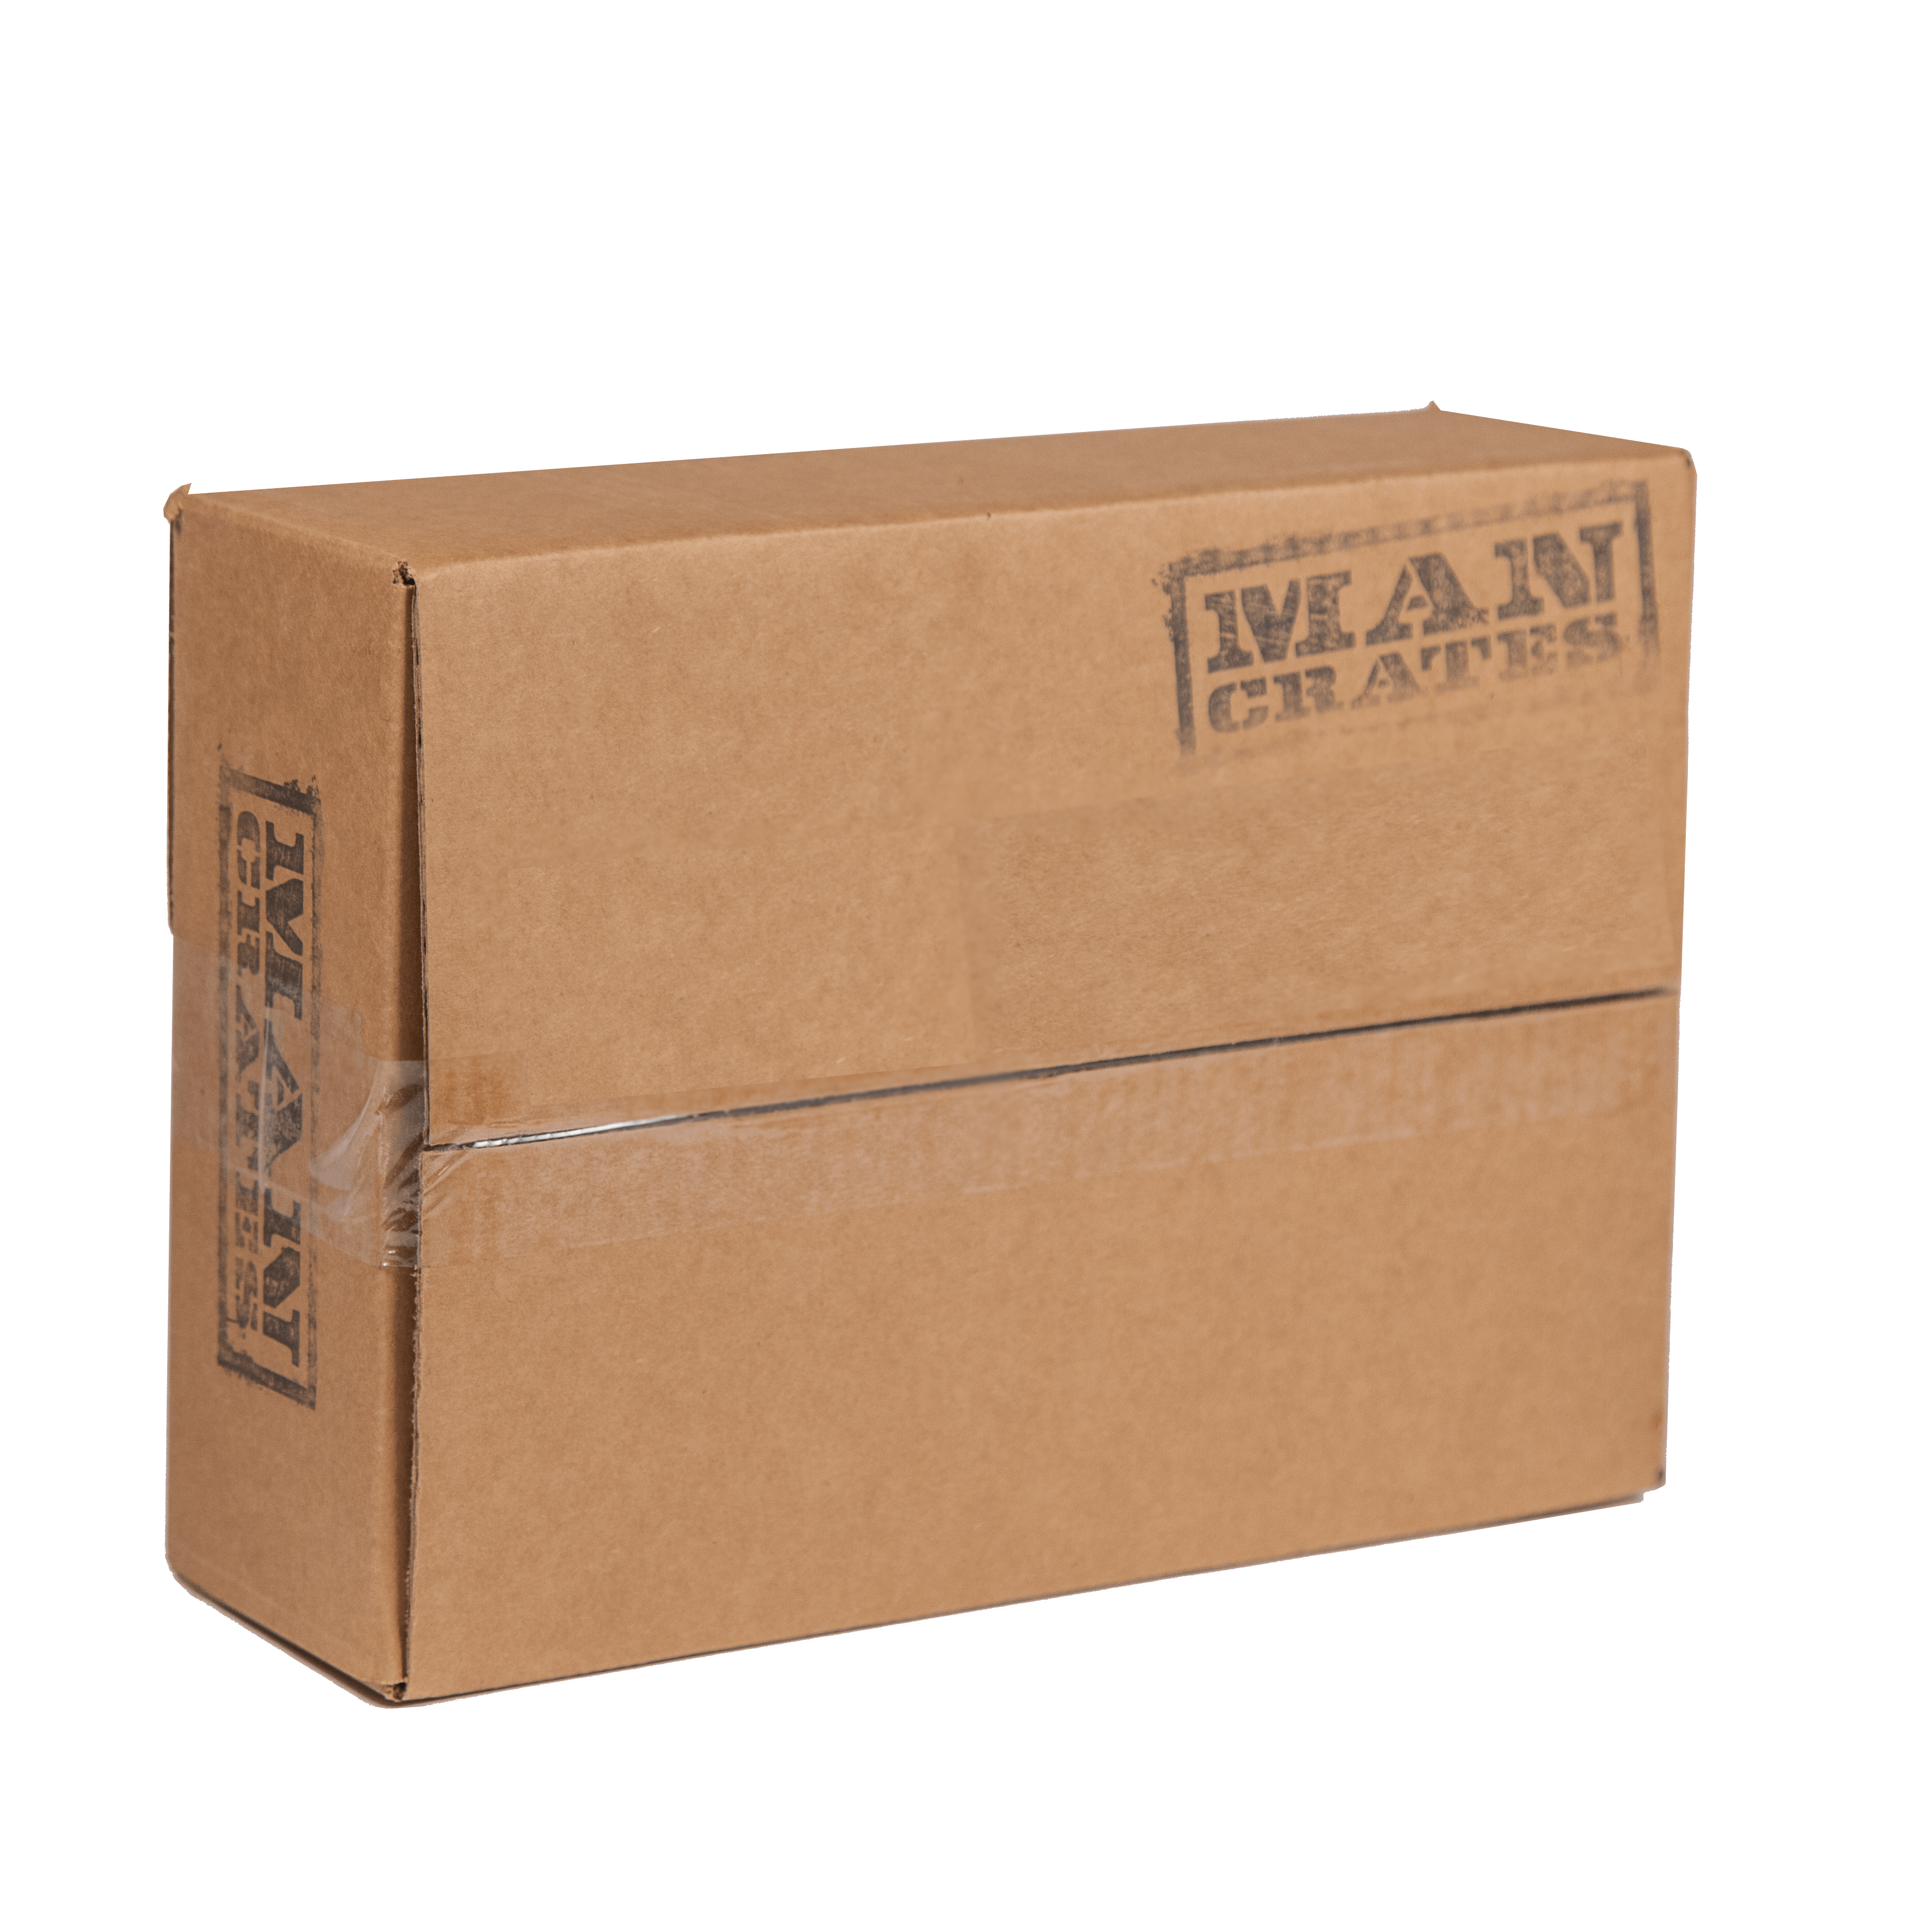 Plain Box items ship in cardboard boxes.